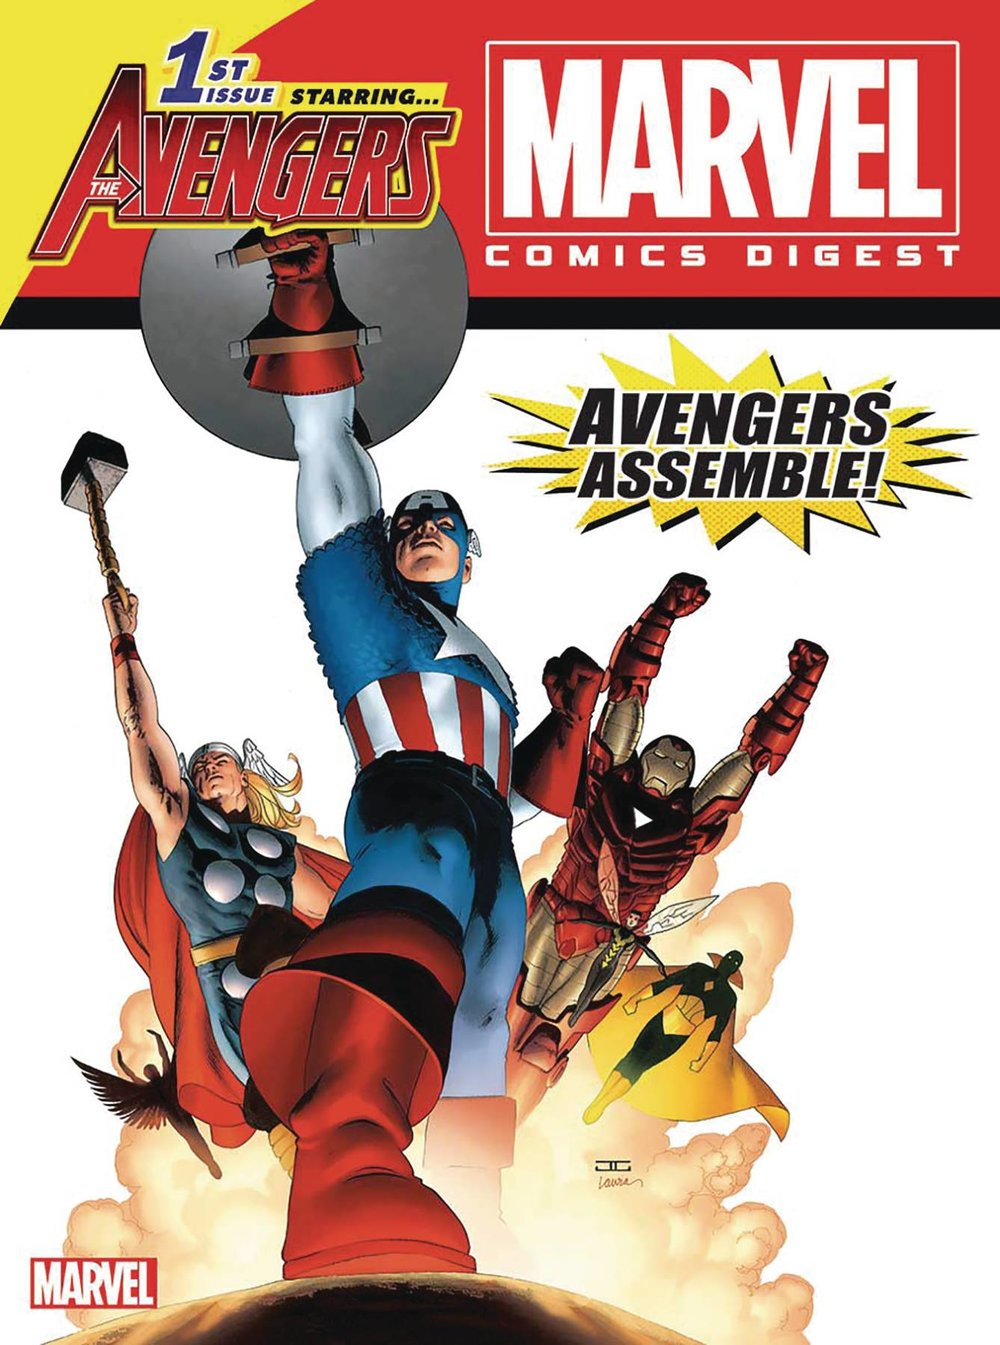 MARVEL COMICS DIGEST 2 THE AVENGERS.jpg